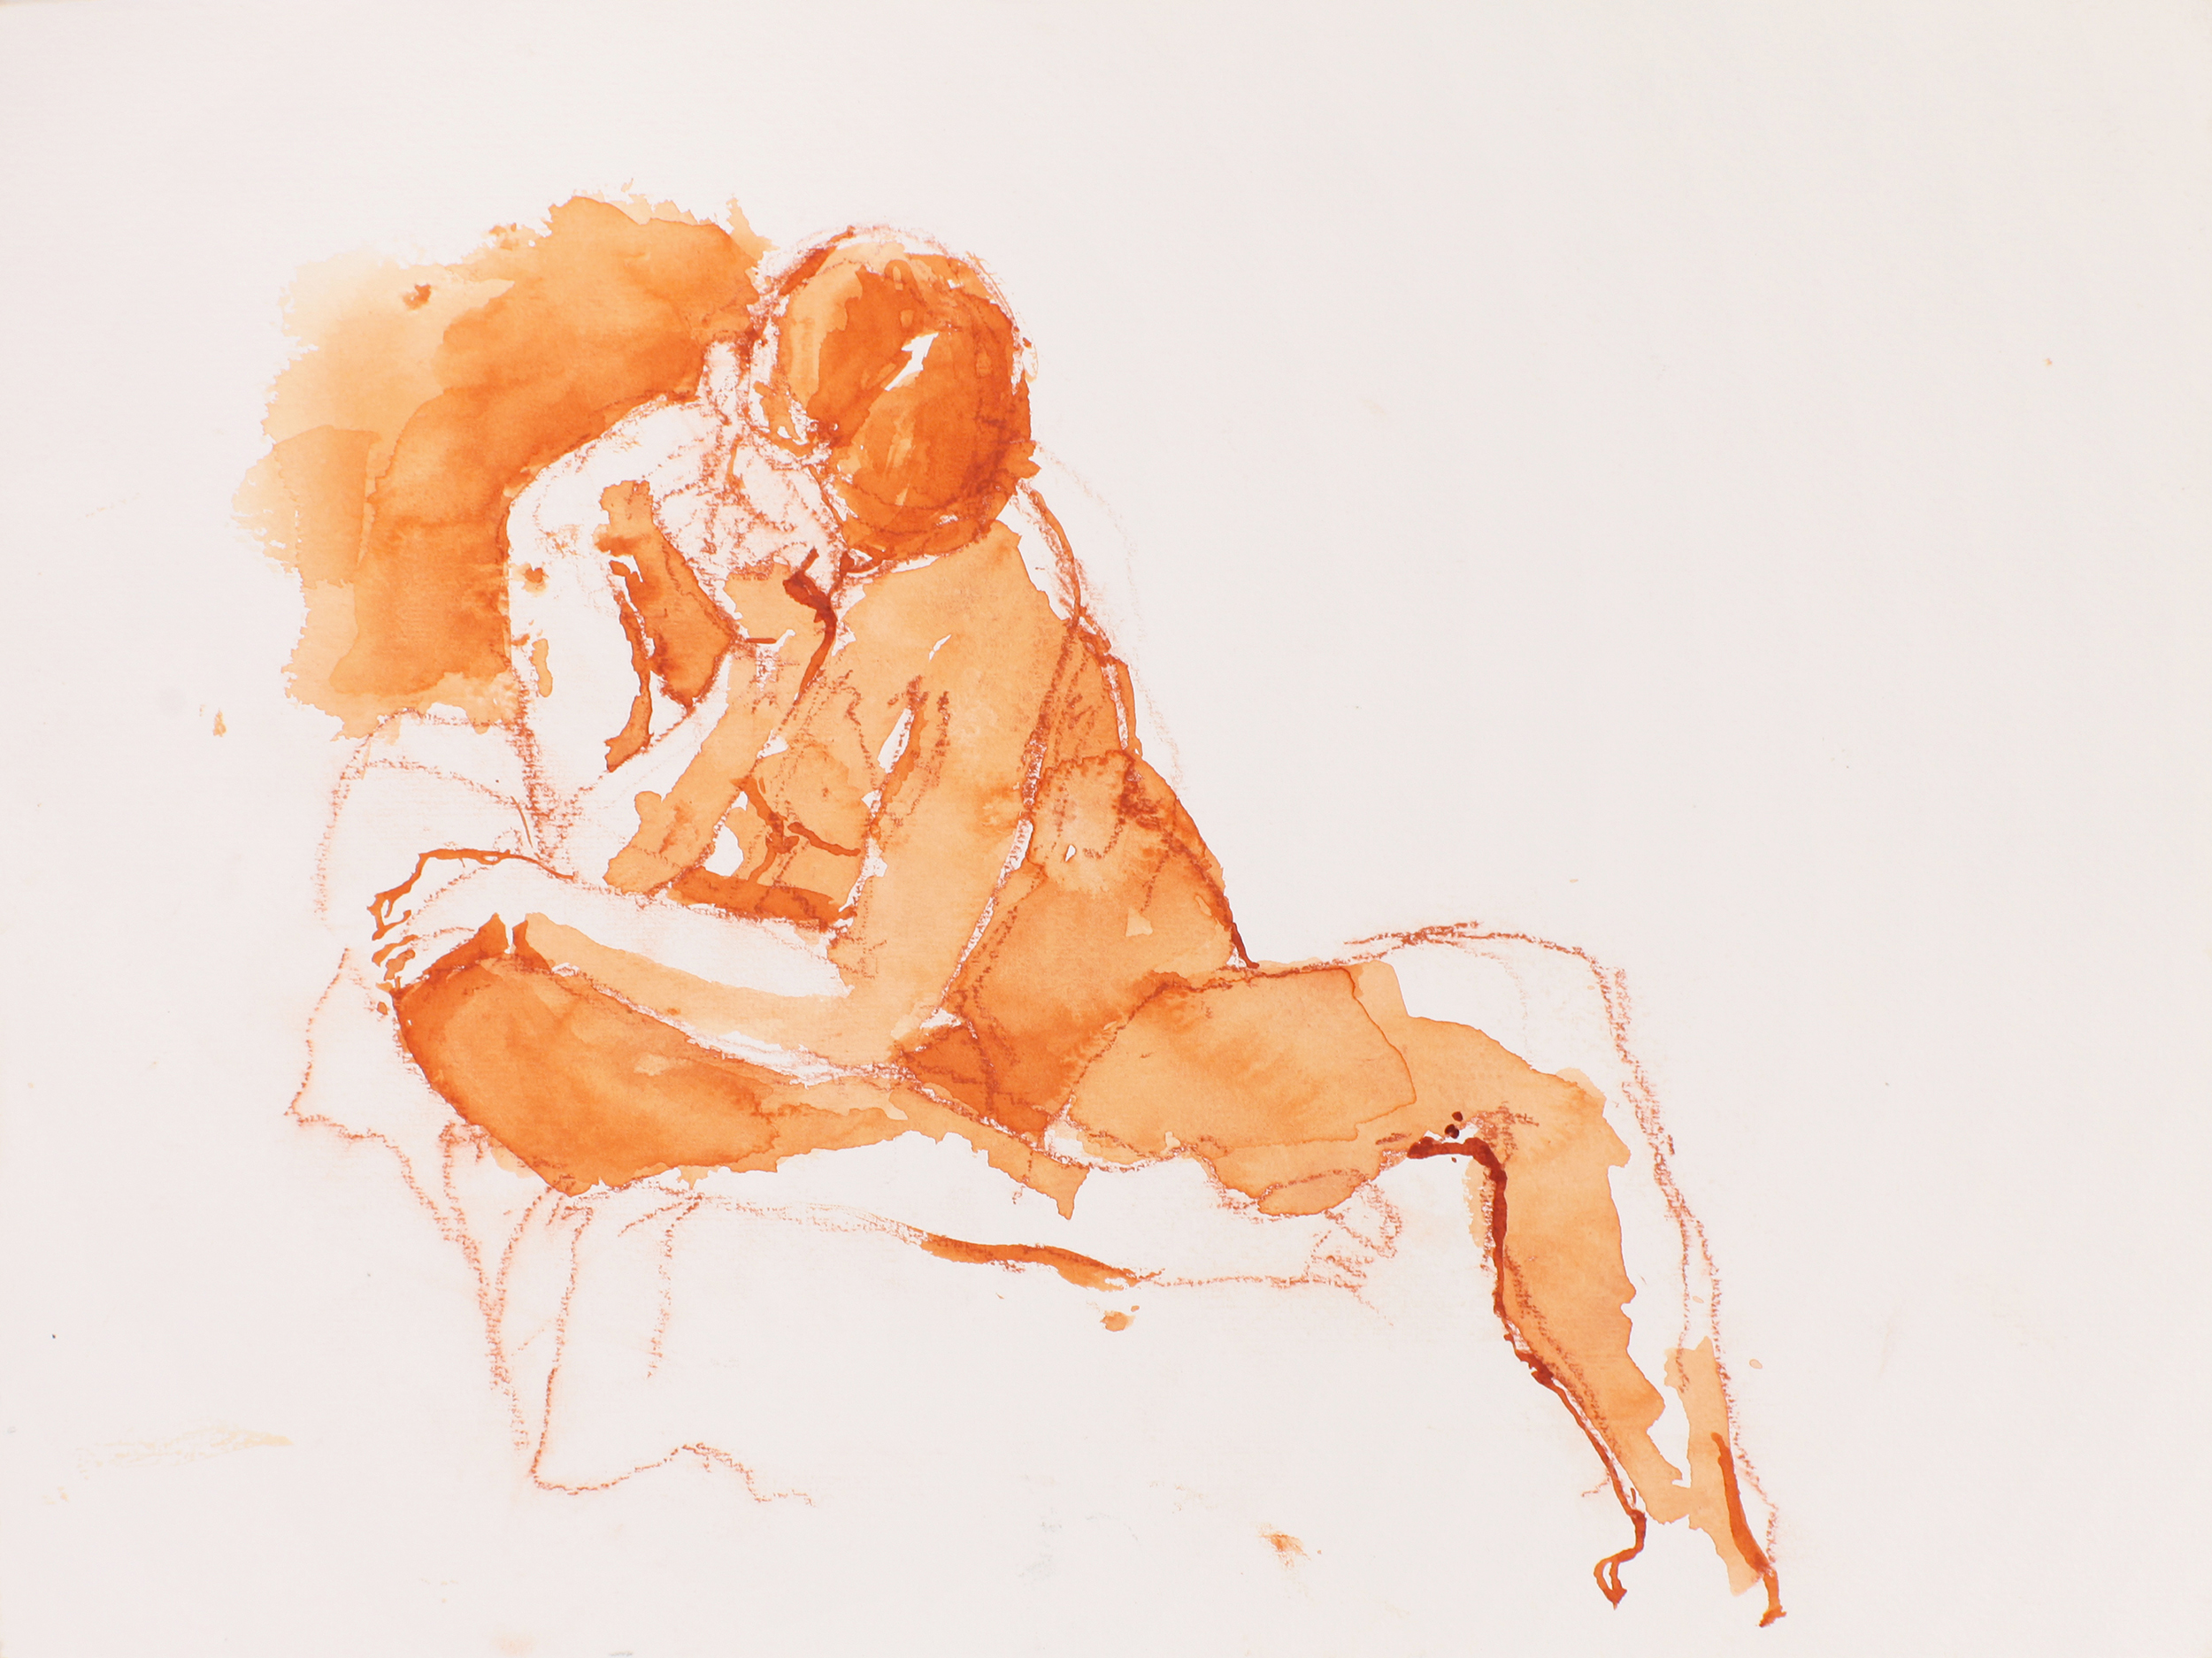 Nude Seated on Couch with Left Arm to Mouth